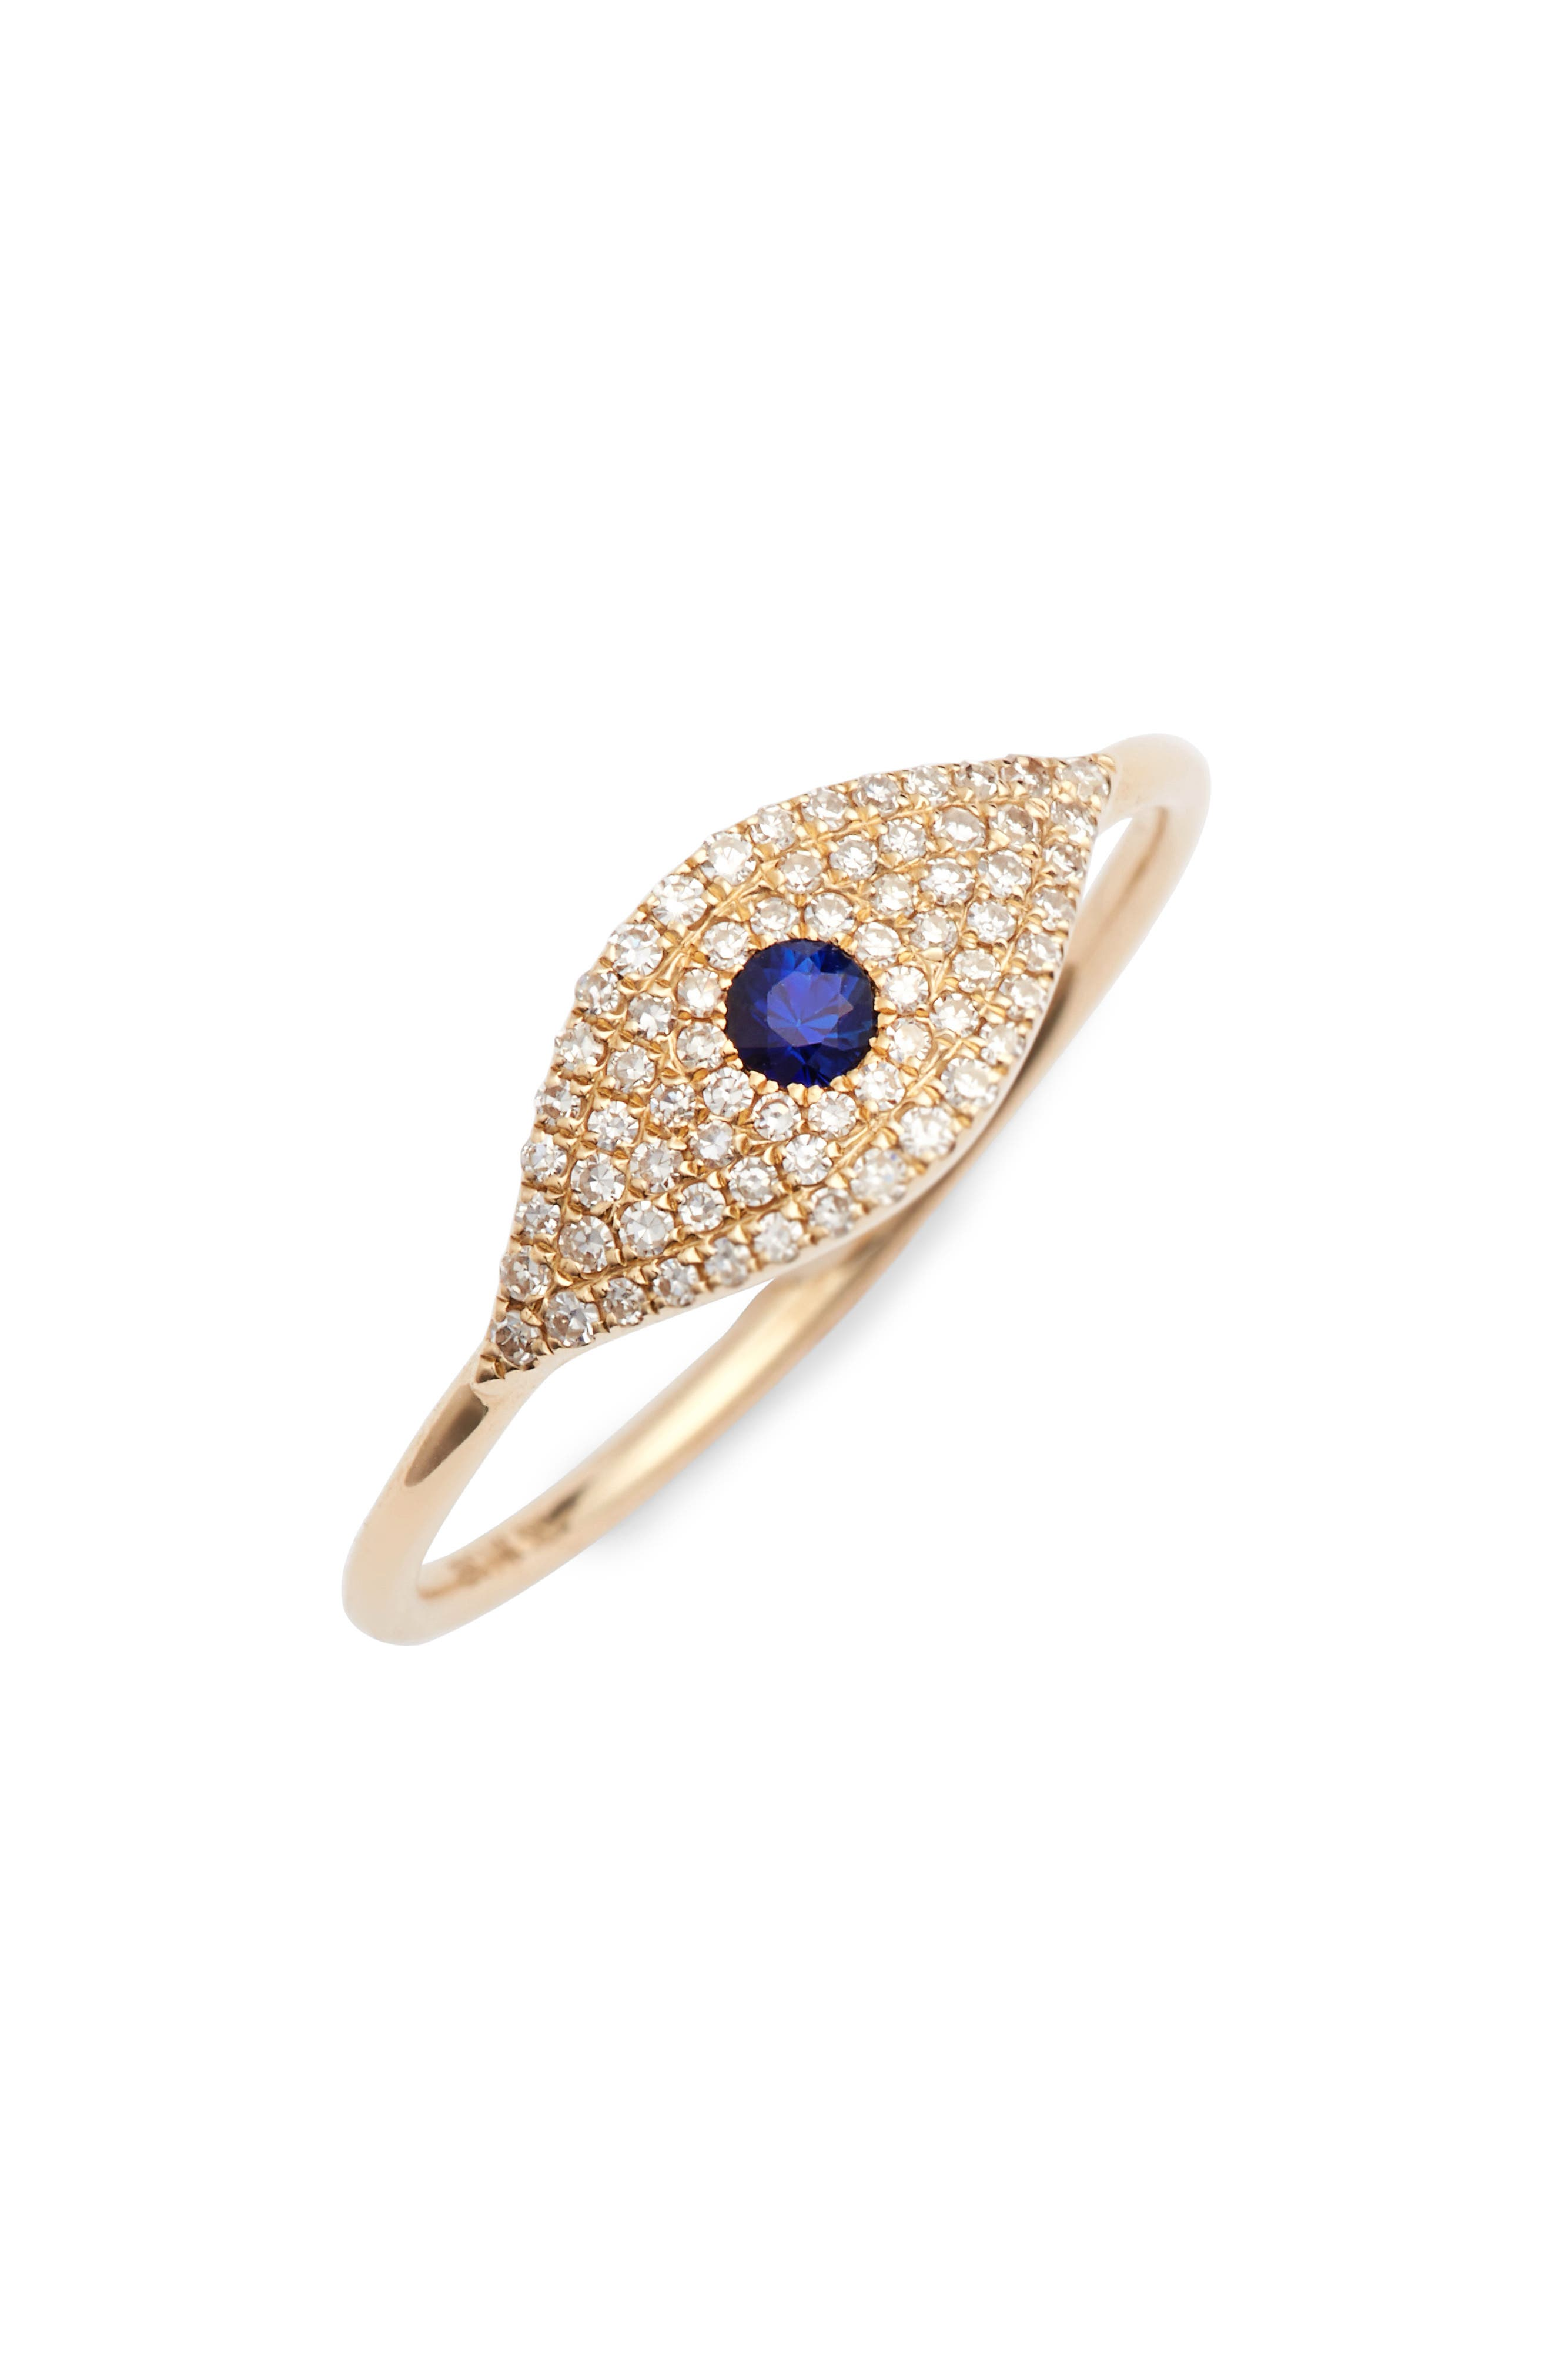 Jumbo Evil Eye Stack Diamond & Sapphire Stack Ring,                             Main thumbnail 1, color,                             Yellow Gold/ Sapphire